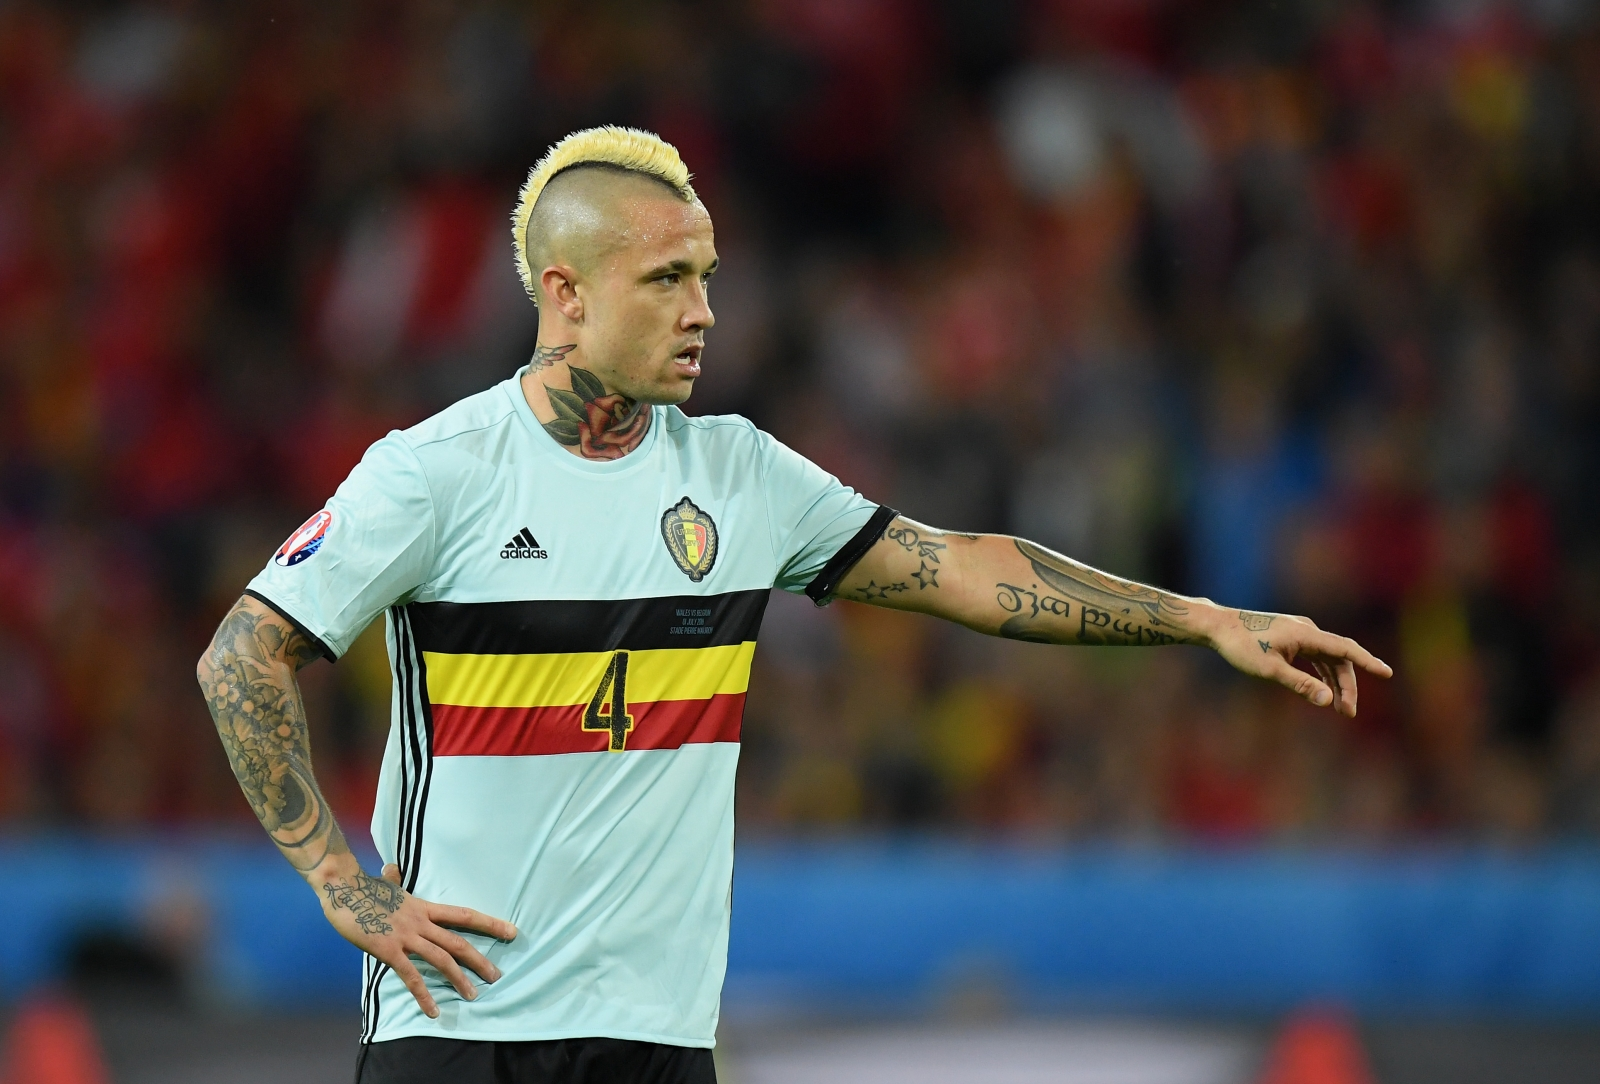 Manchester United join Chelsea in race to sign Radja Nainggolan